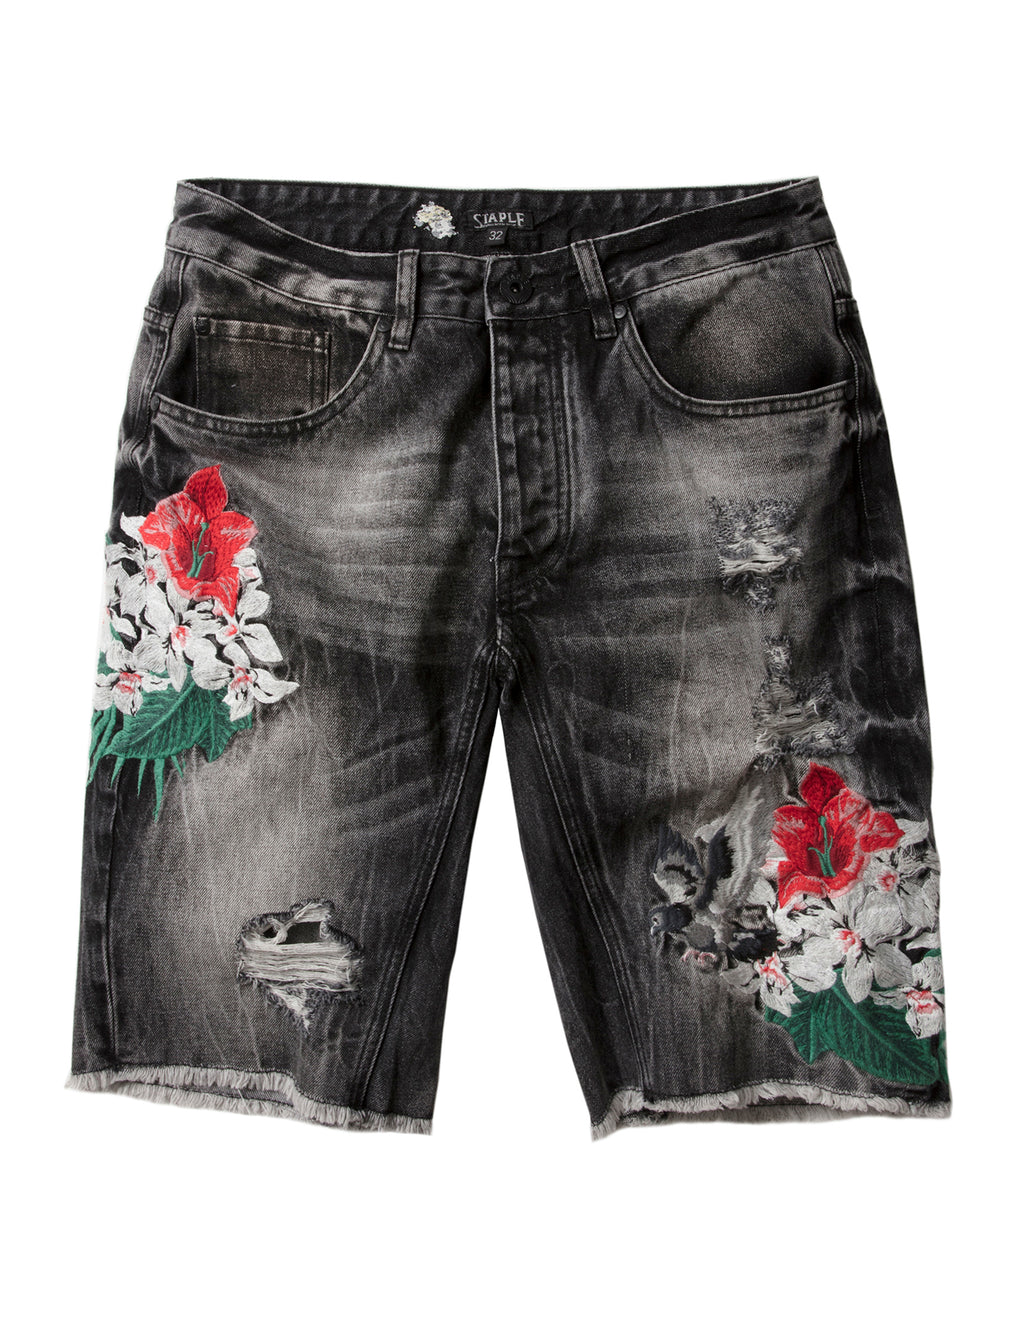 Botanica Denim Short - Shorts | Staple Pigeon